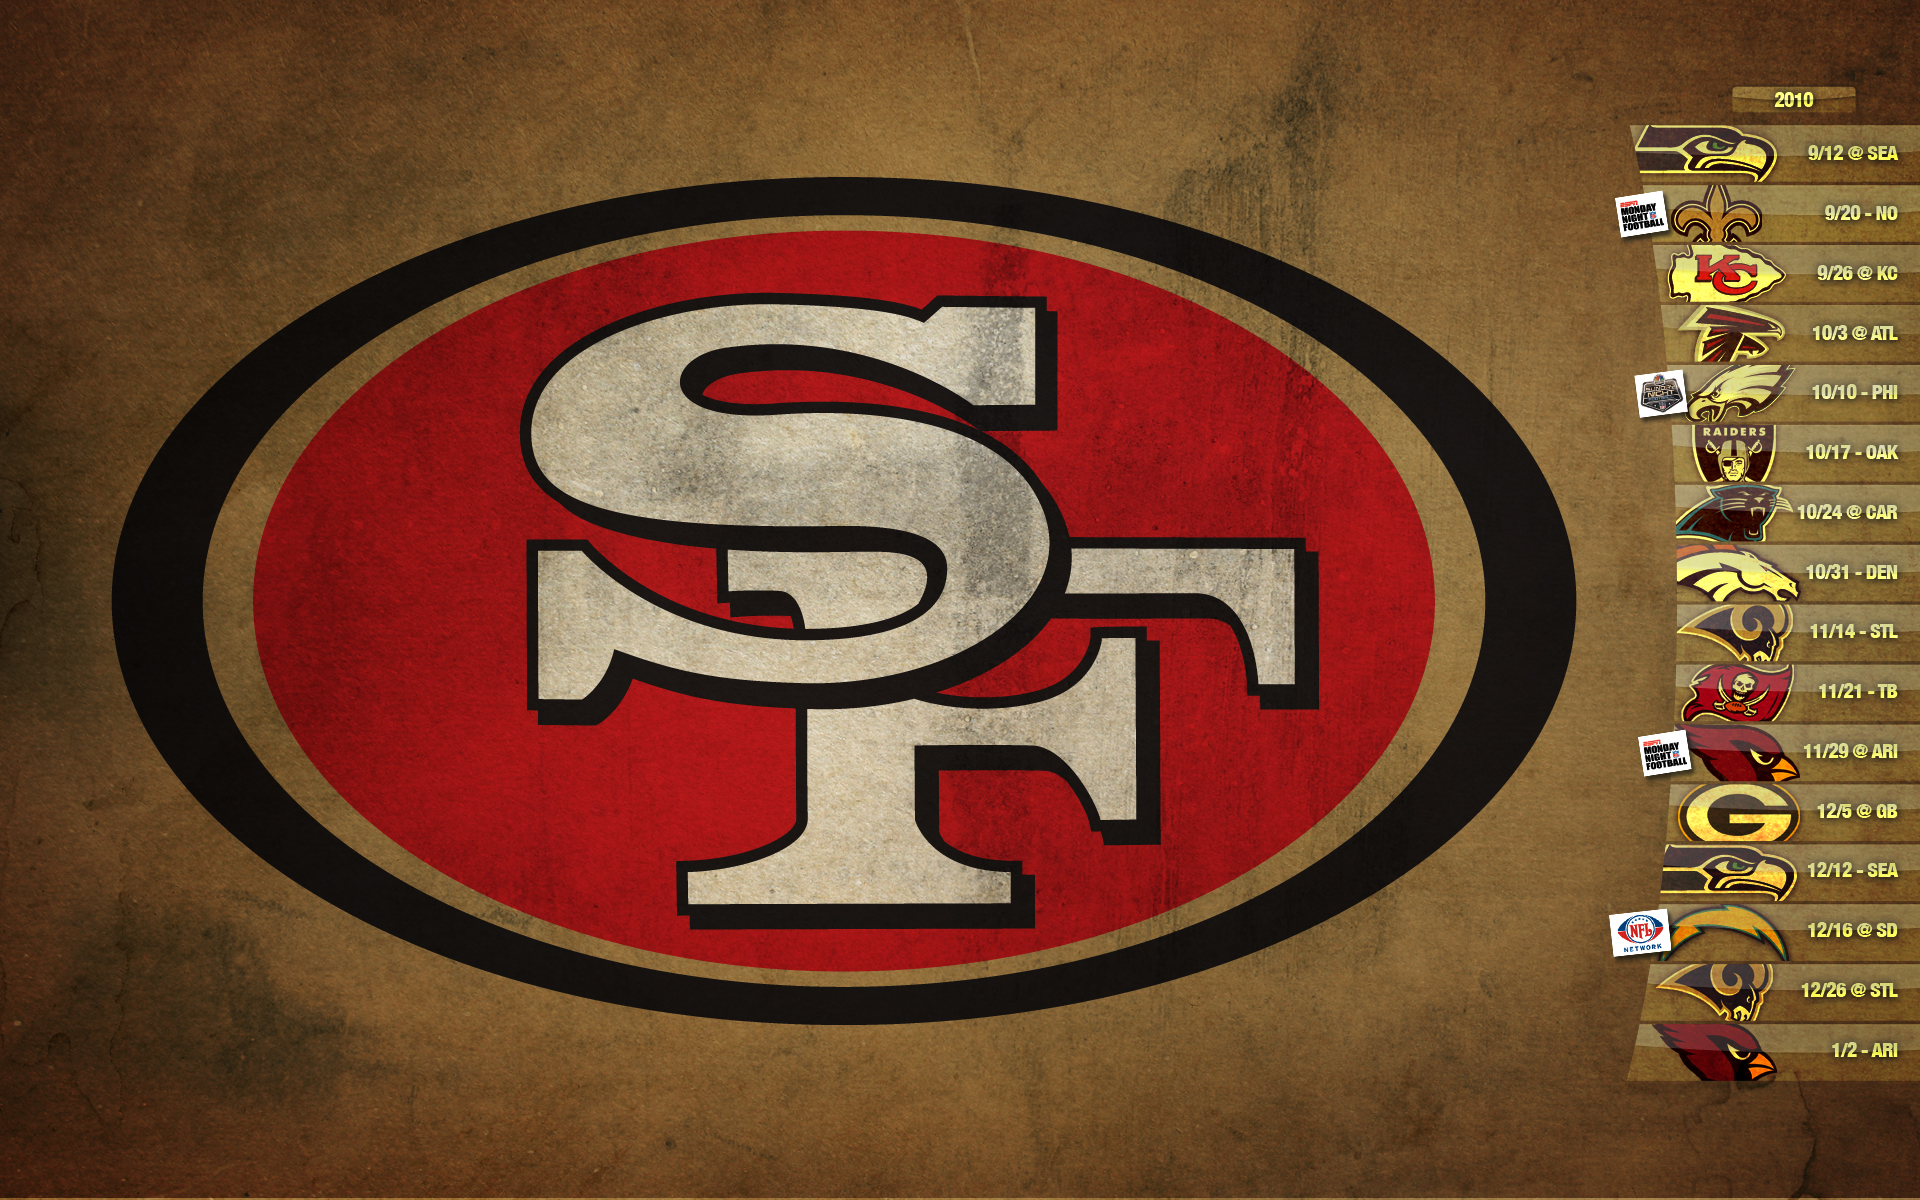 2010 49ers Graphics Wallpapers Schedules Photoshop Page 2 1920x1200